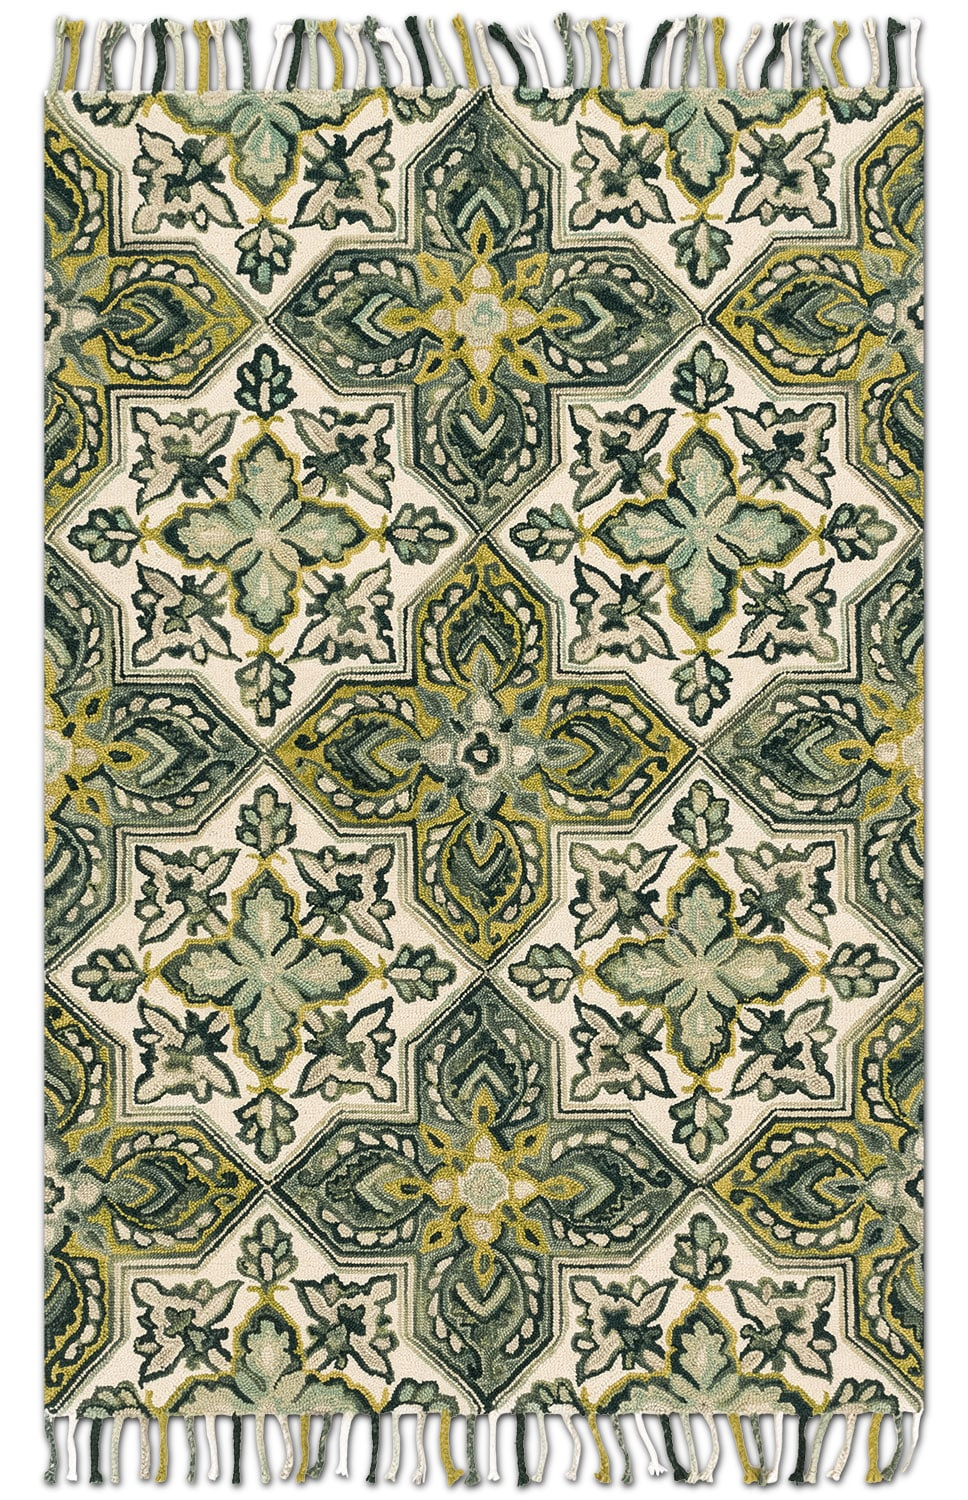 Rugs - Brushstroke 5' x 8' Rug - Ivory and Emerald